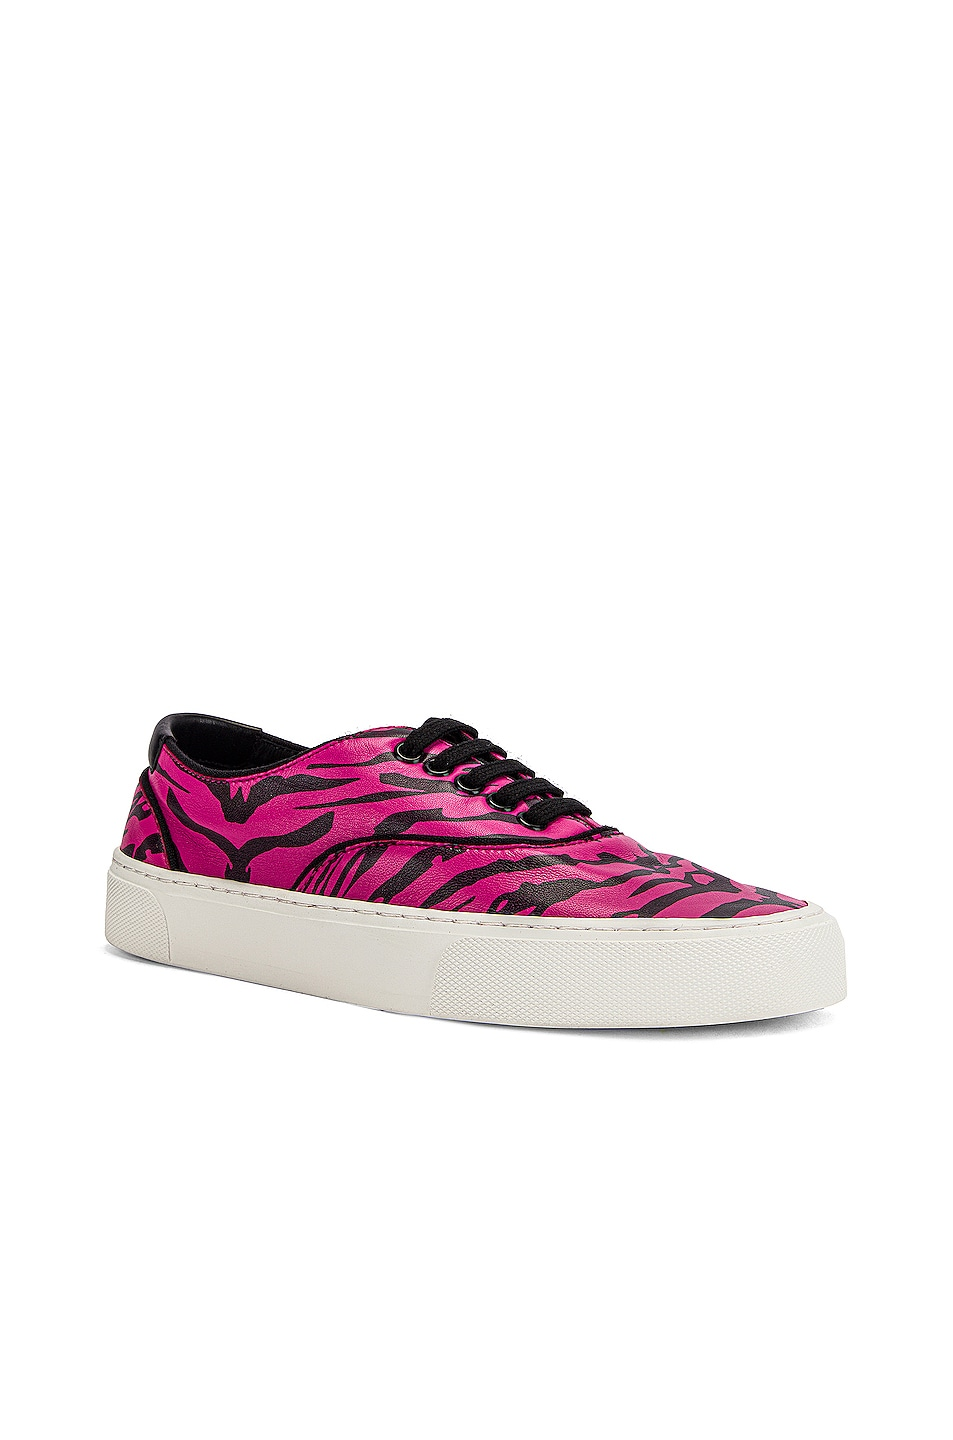 Image 2 of Saint Laurent Low Top Venice Sneakers in Fuchsia & Black